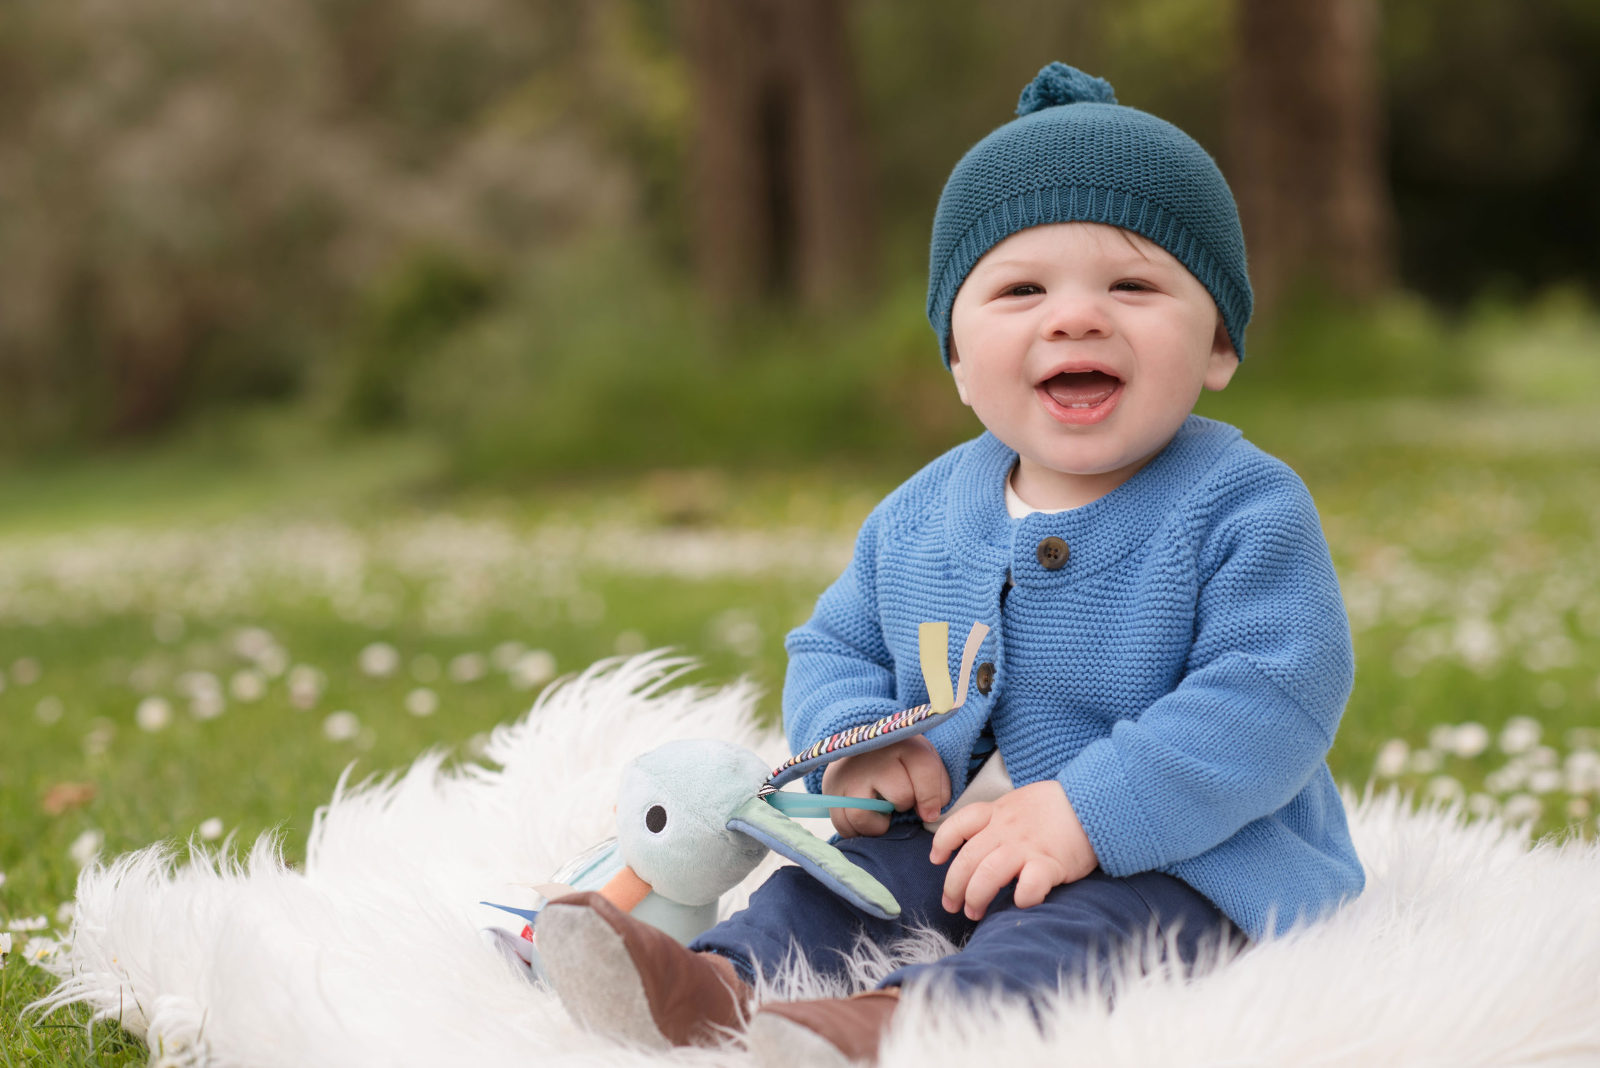 happy sitting baby boy with dark teal knit cap, powder blue knit sweater, multi-fabric toy rabbit, sitting on a white flokati in a green field